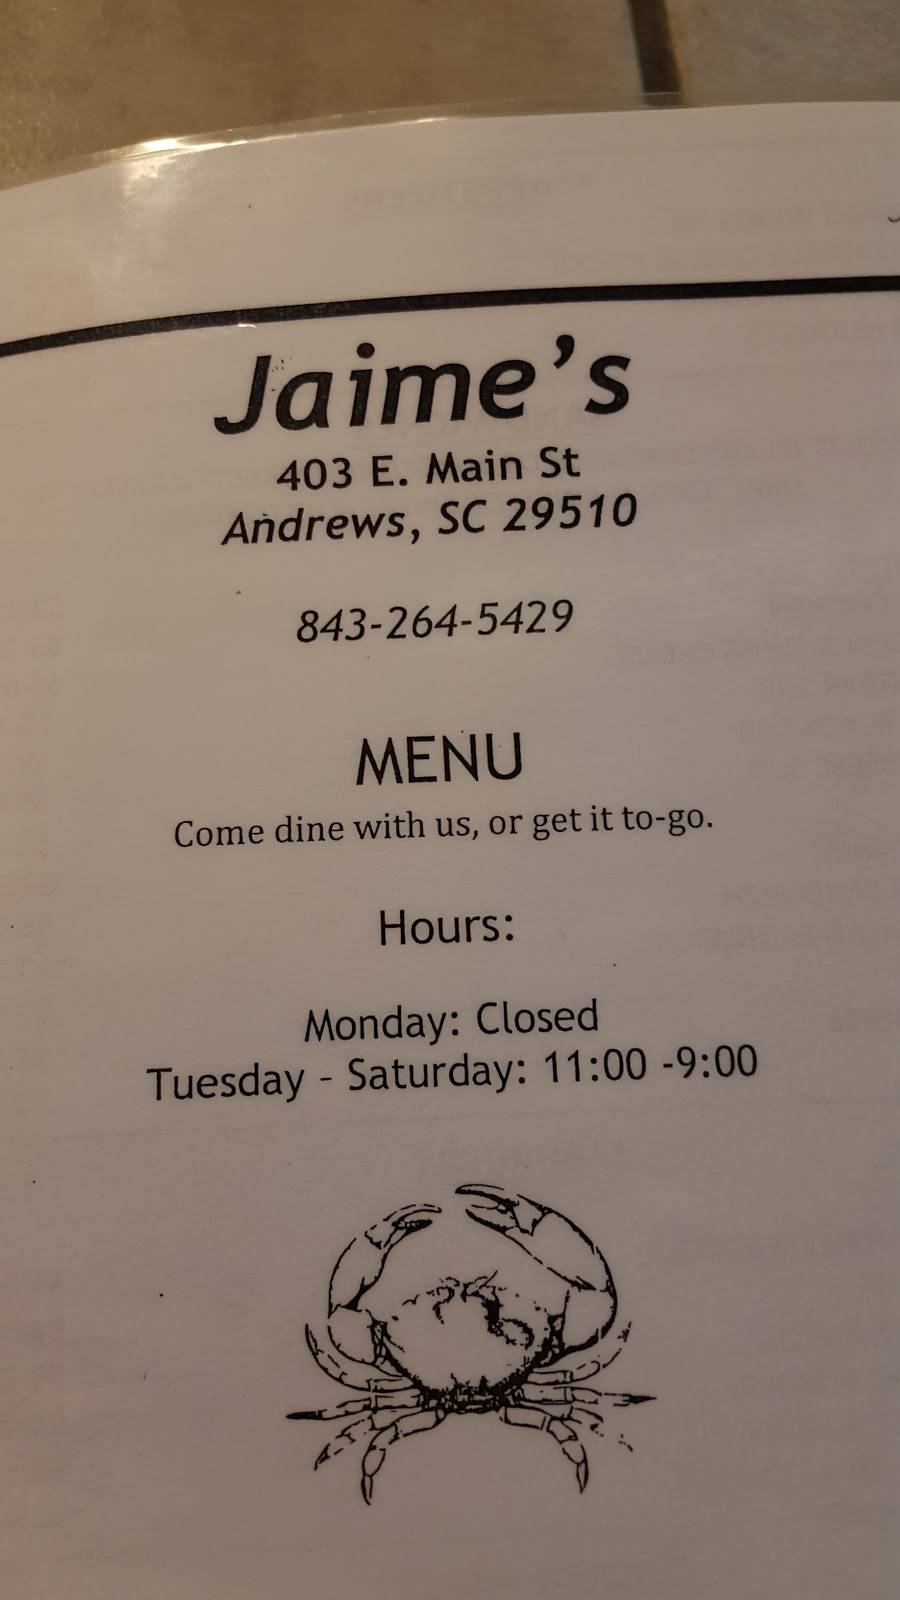 Jamies Seafood Shack | restaurant | 403 E Main St, Andrews, SC 29510, USA | 8432645429 OR +1 843-264-5429